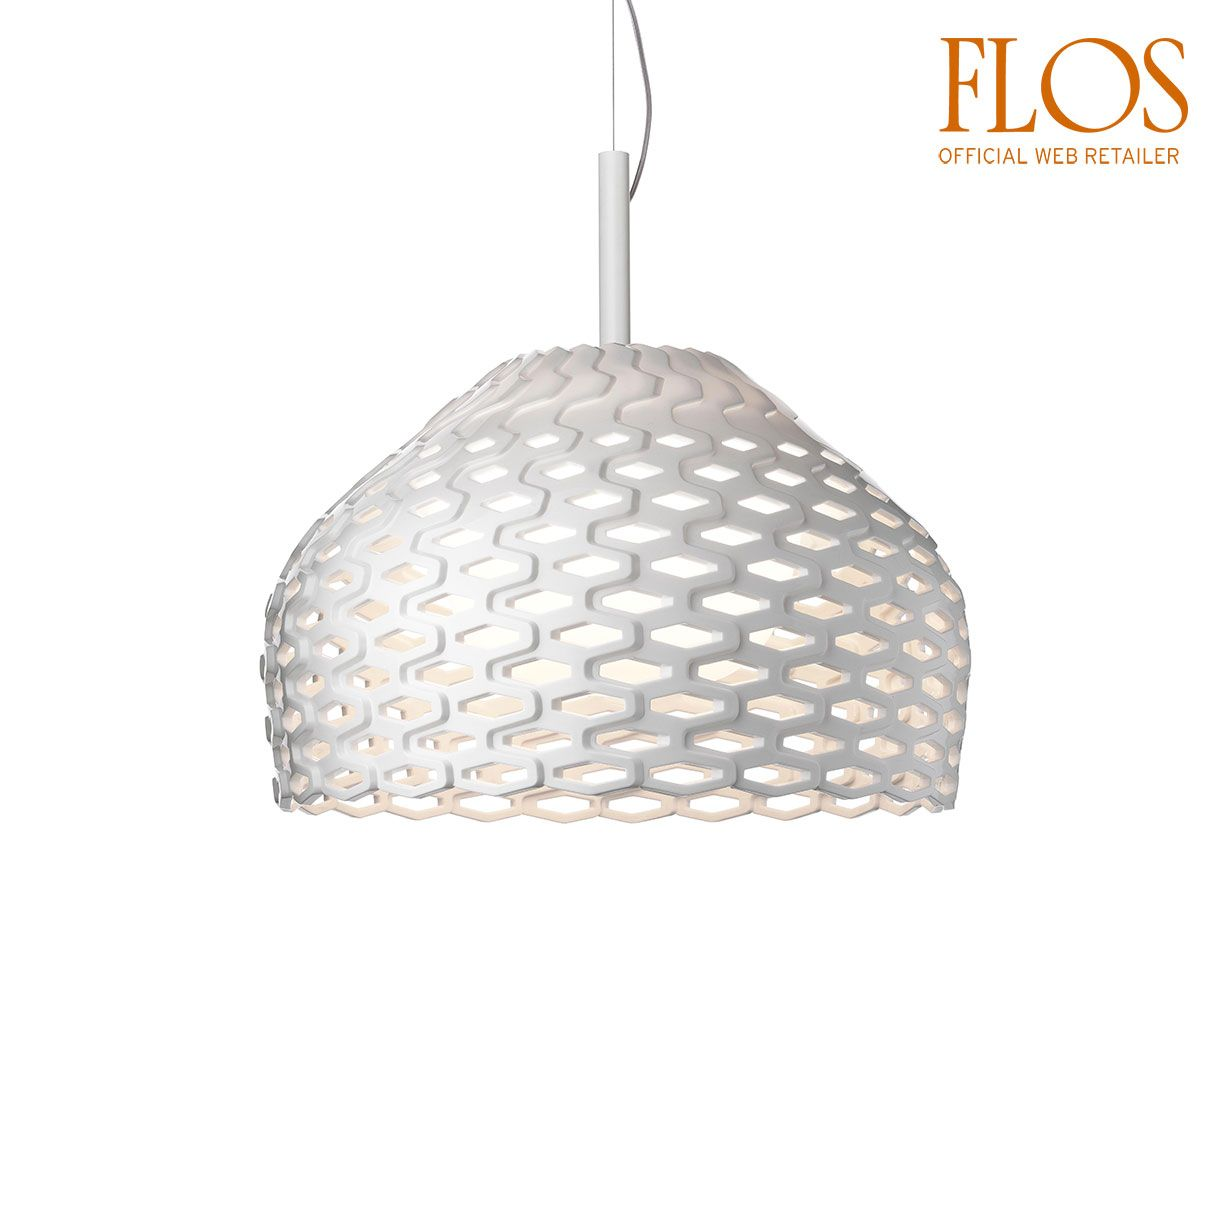 Diffused Light Suspended Lamp External Diffuser In